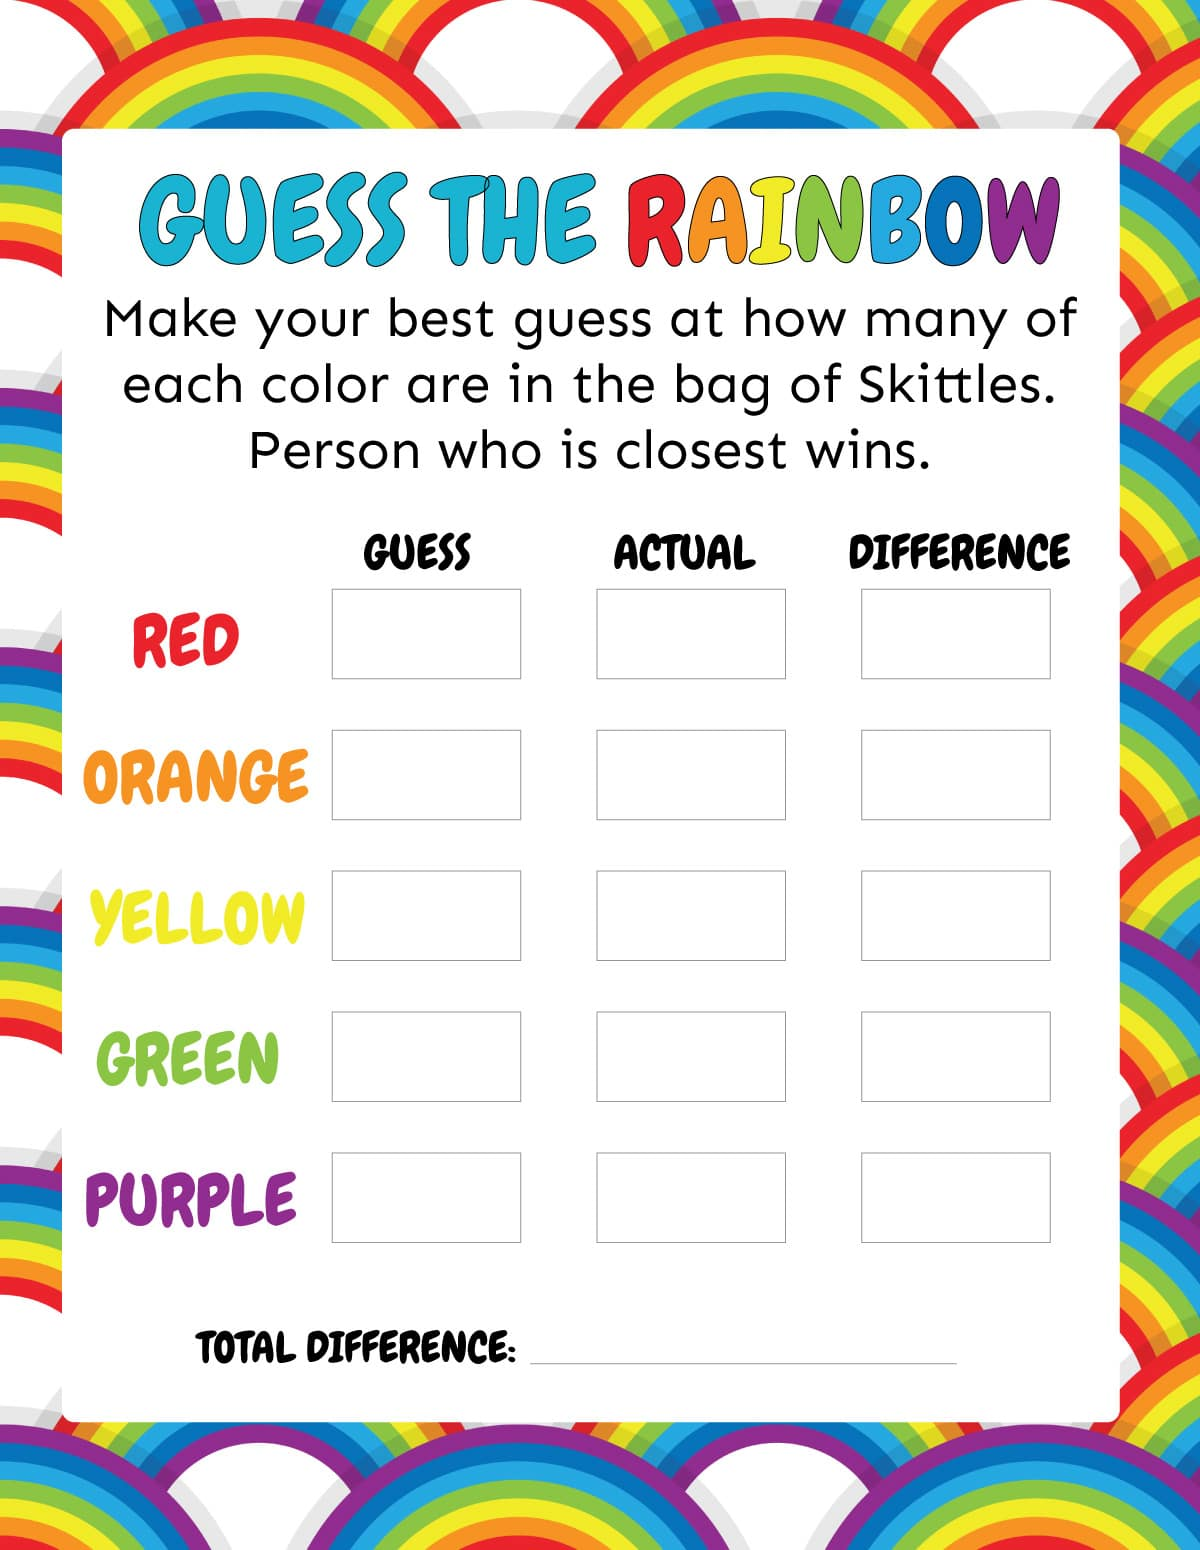 Printed out guess the rainbow game